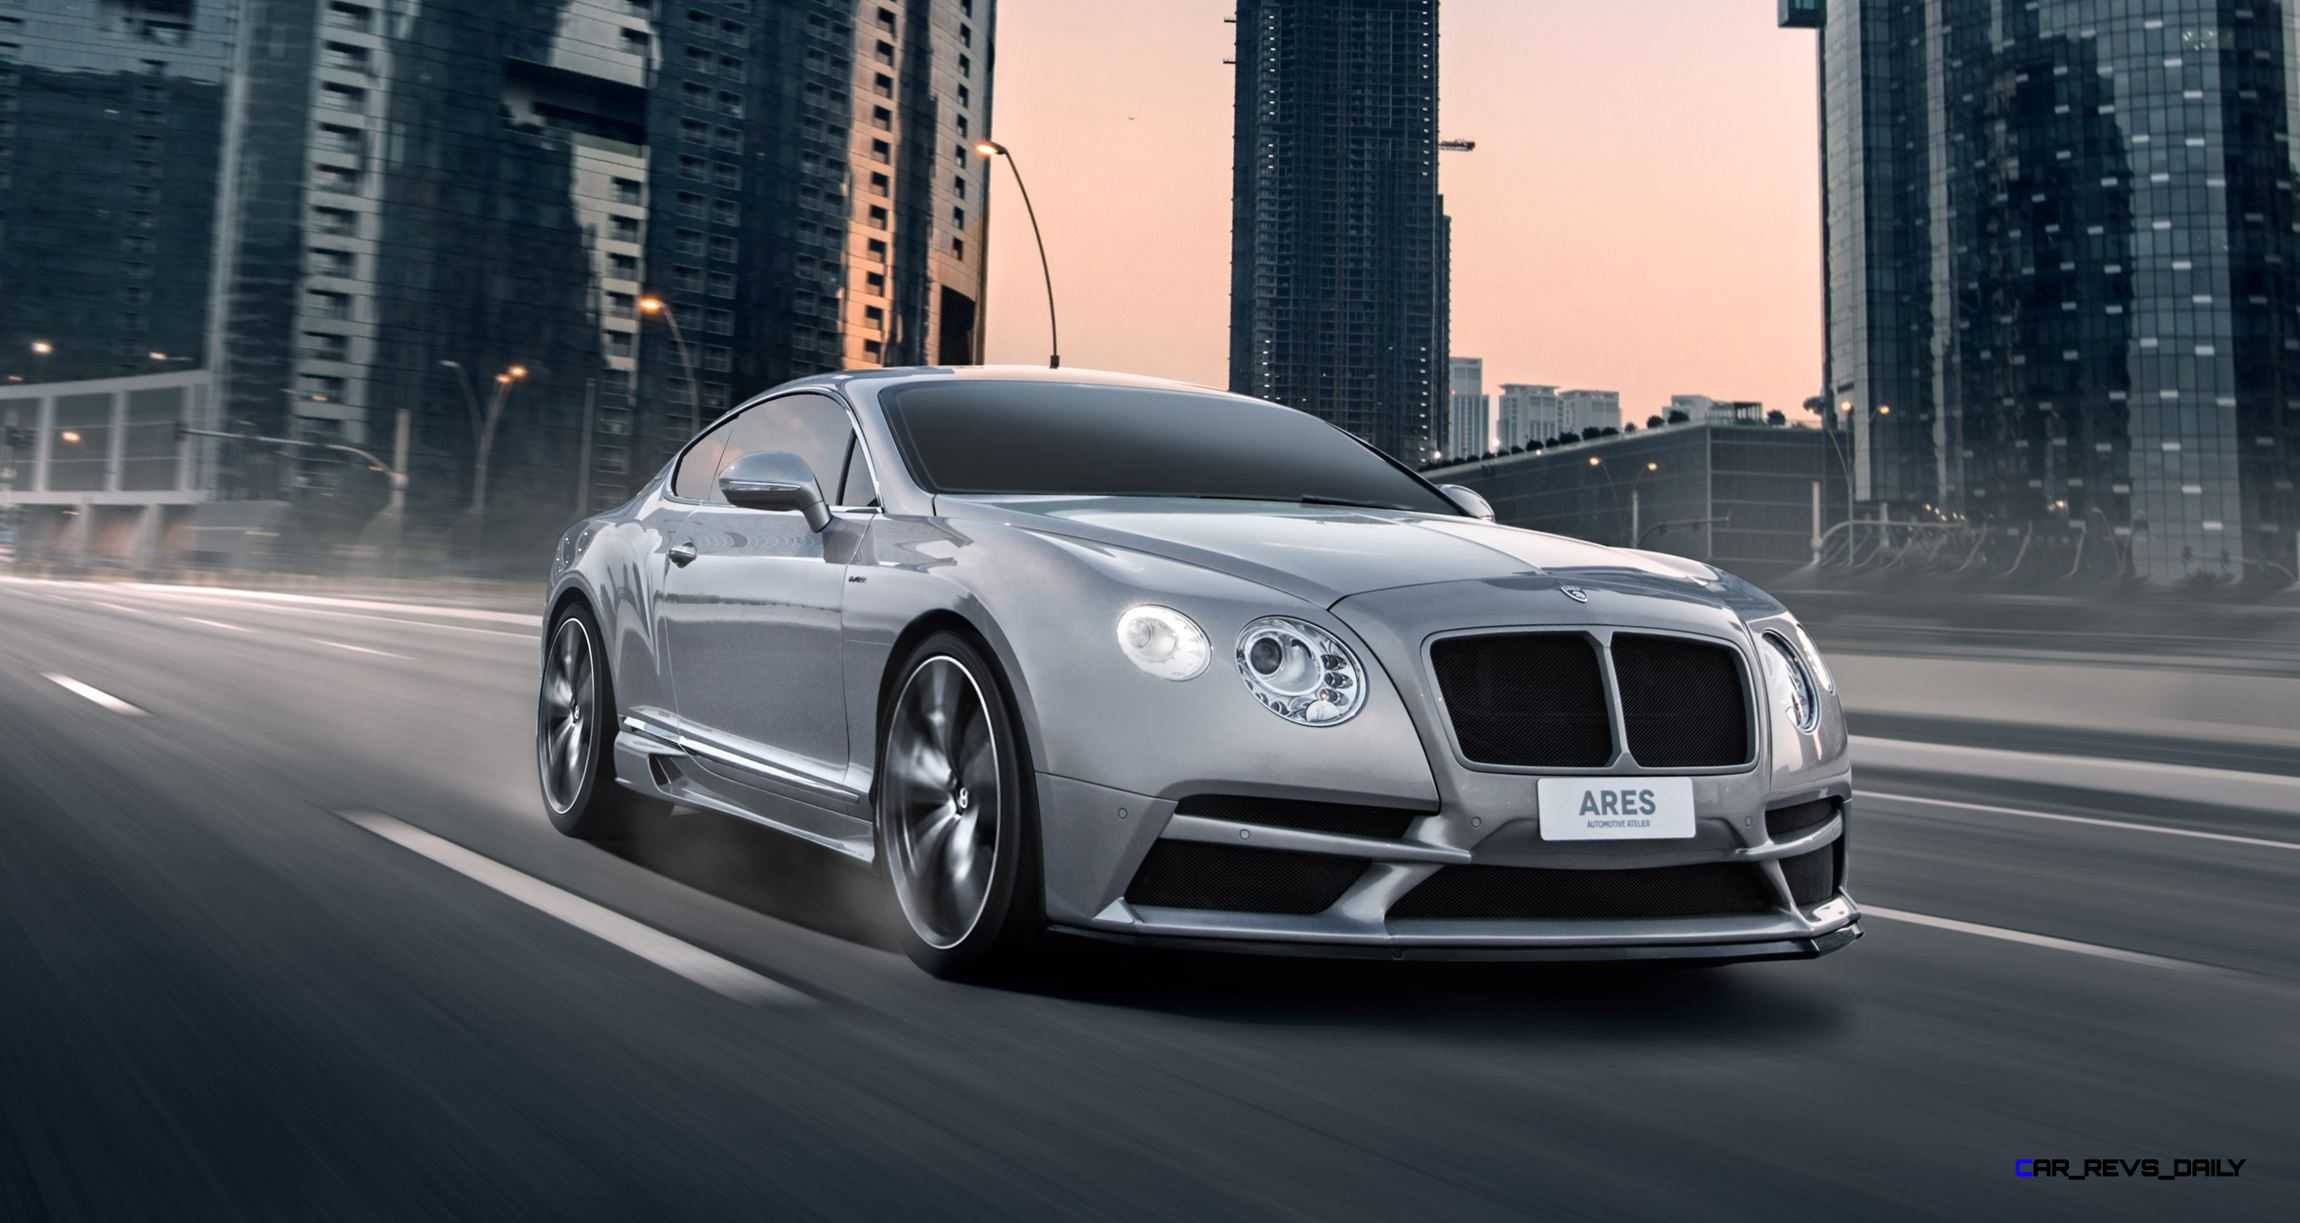 speed gt coupe file continental bentley wiki jpg